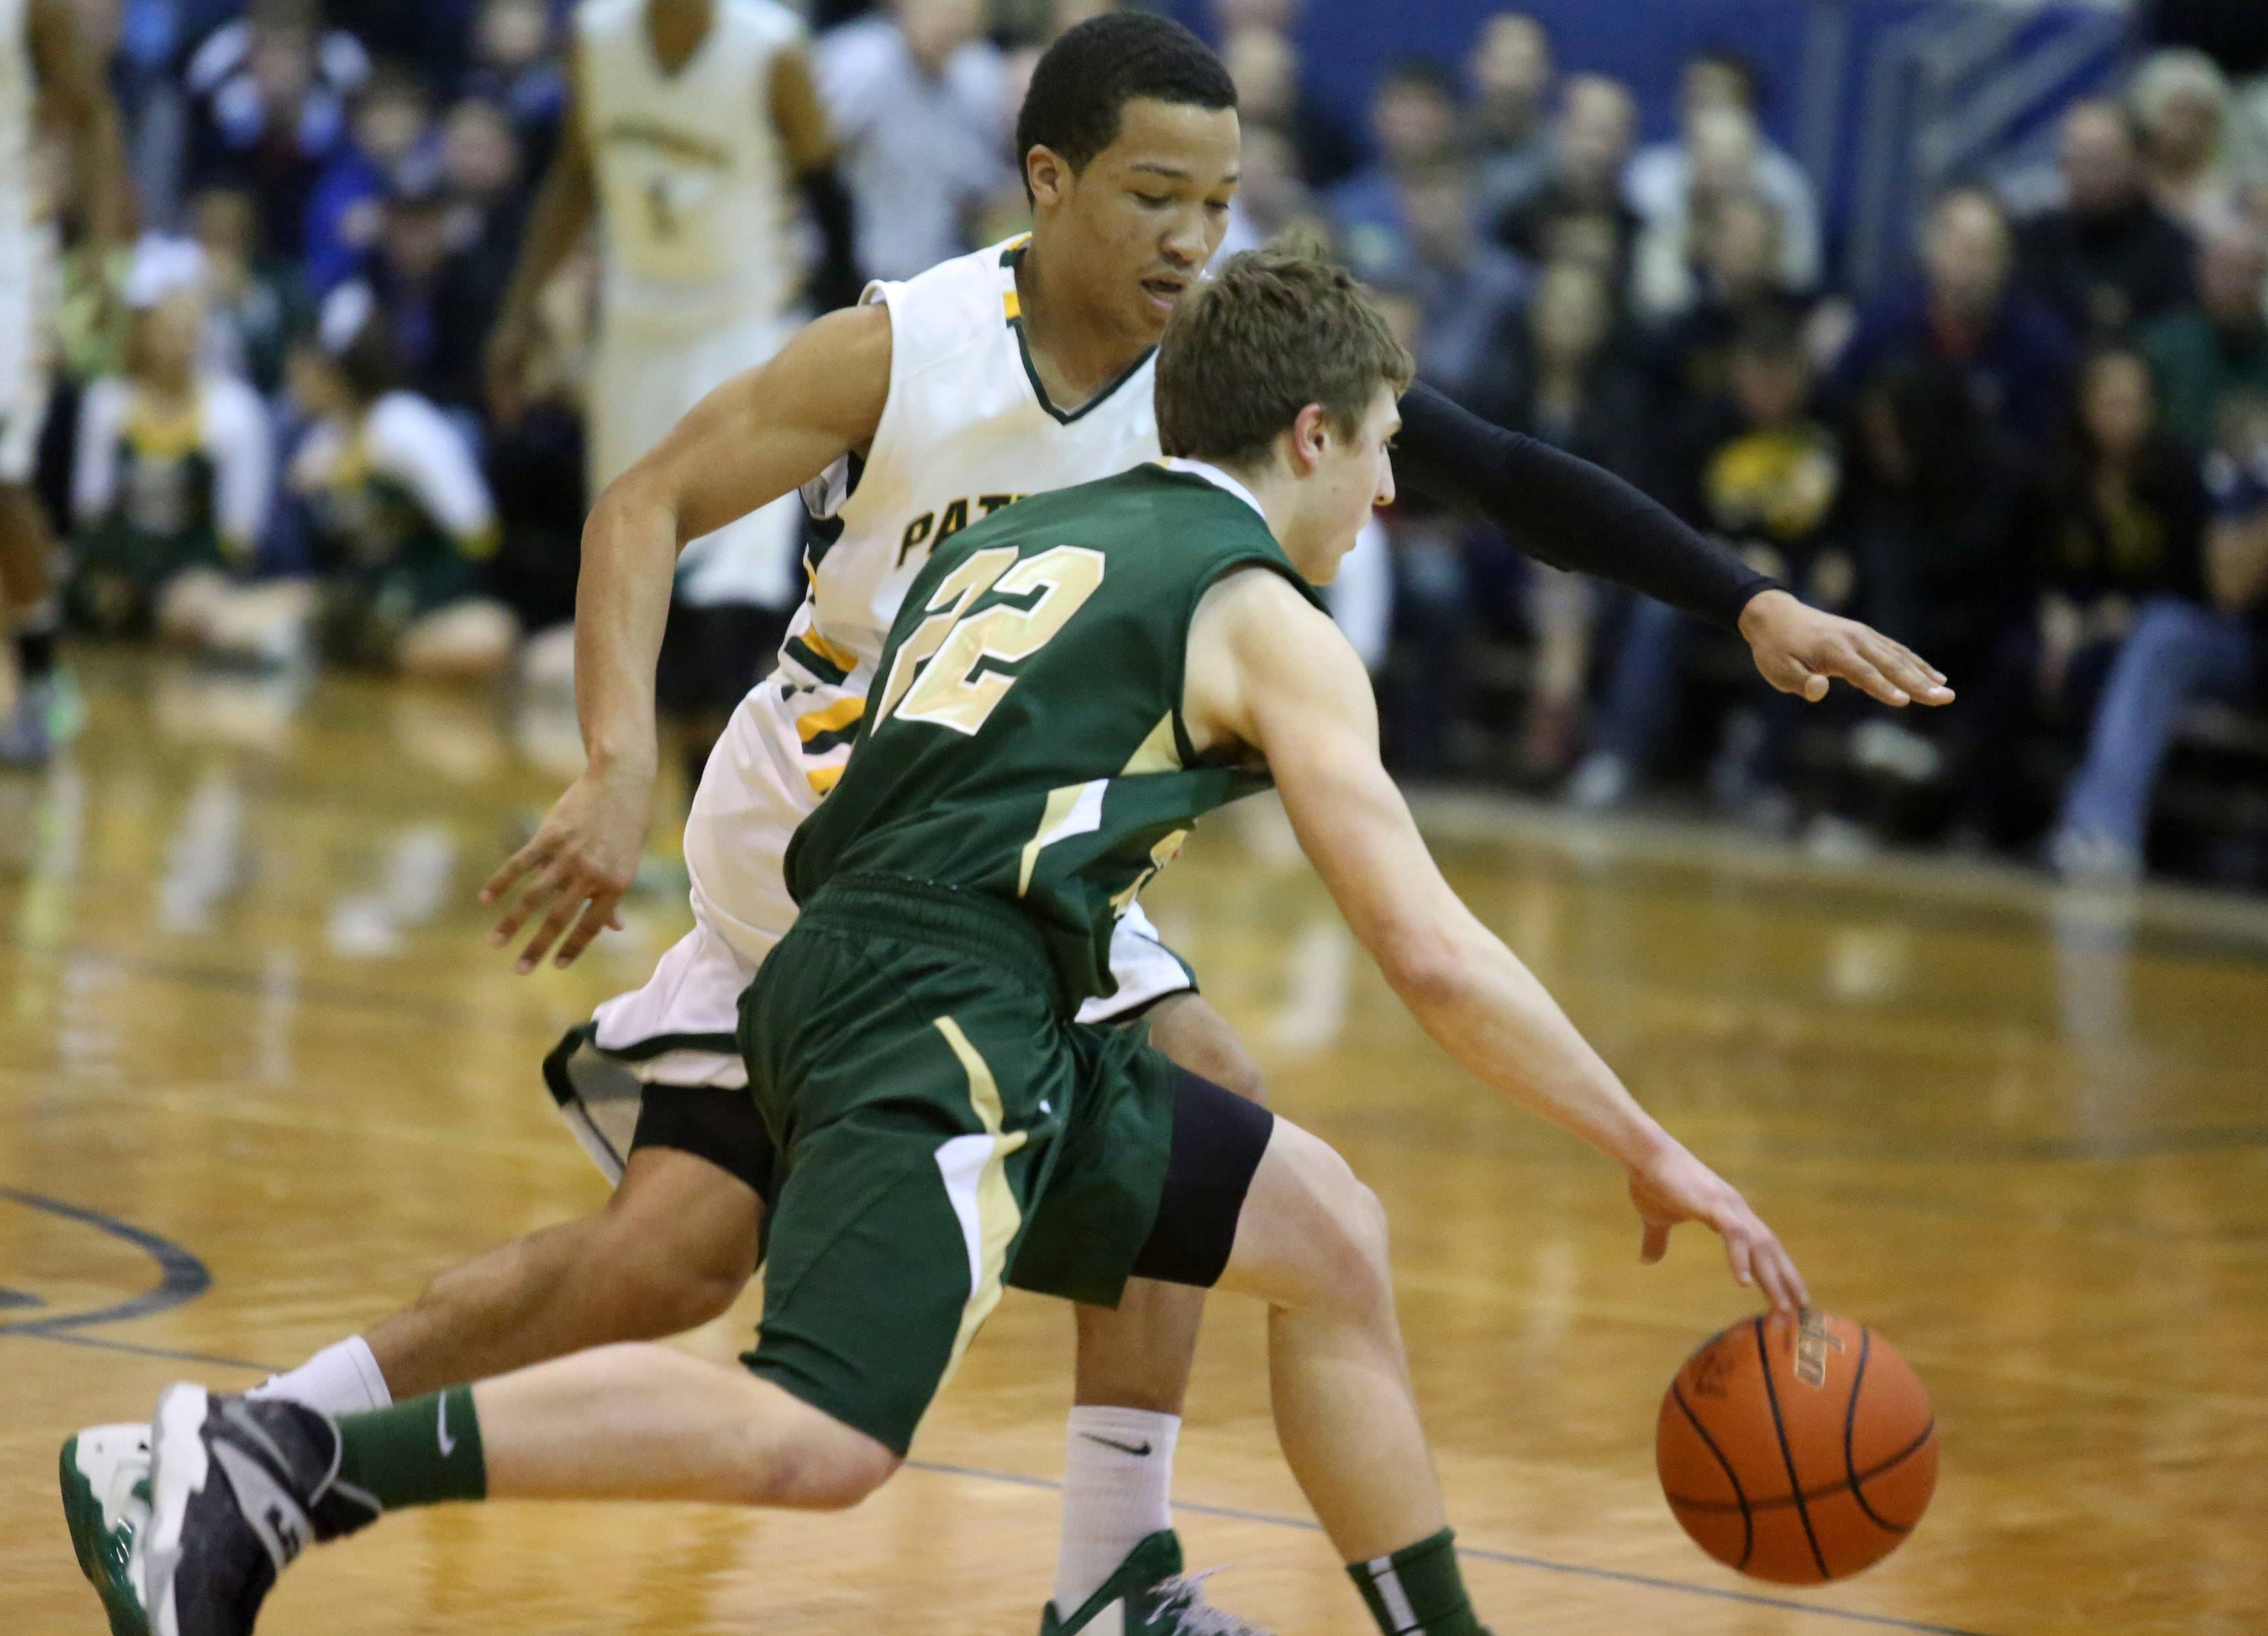 Fremd guard Garrett Groot pushes the ball upcourt against Stevenson defender Jalen Brunson during Stevenson's victory in the Lake Zurich sectional final.